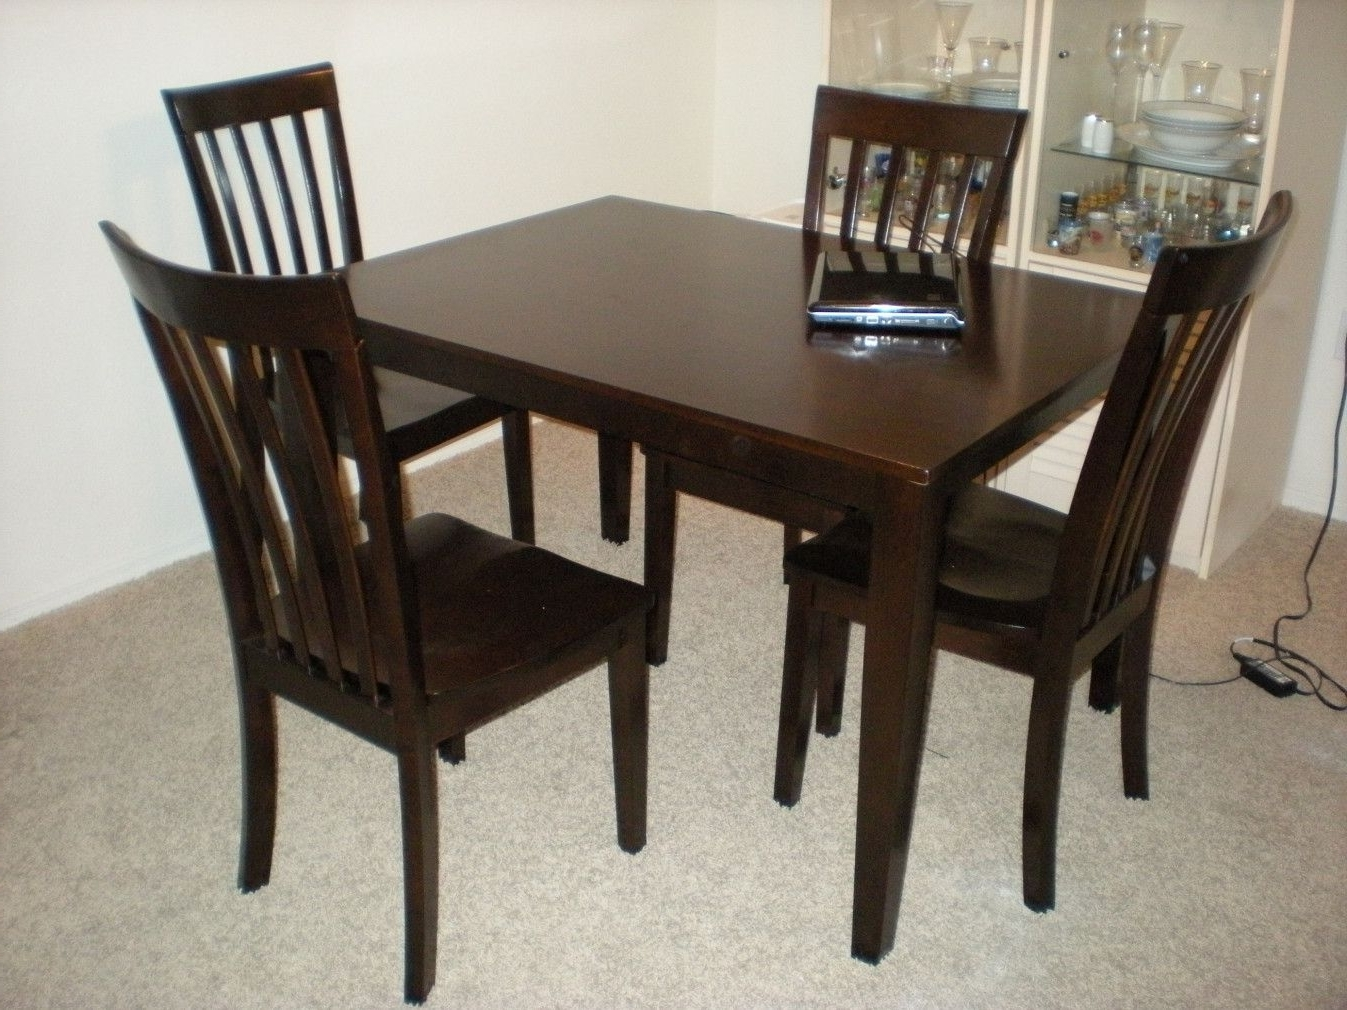 Dark Wooden Dining Tables within 2017 2018 Black Wooden Dining Table And Chairs - Diy Modern Furniture